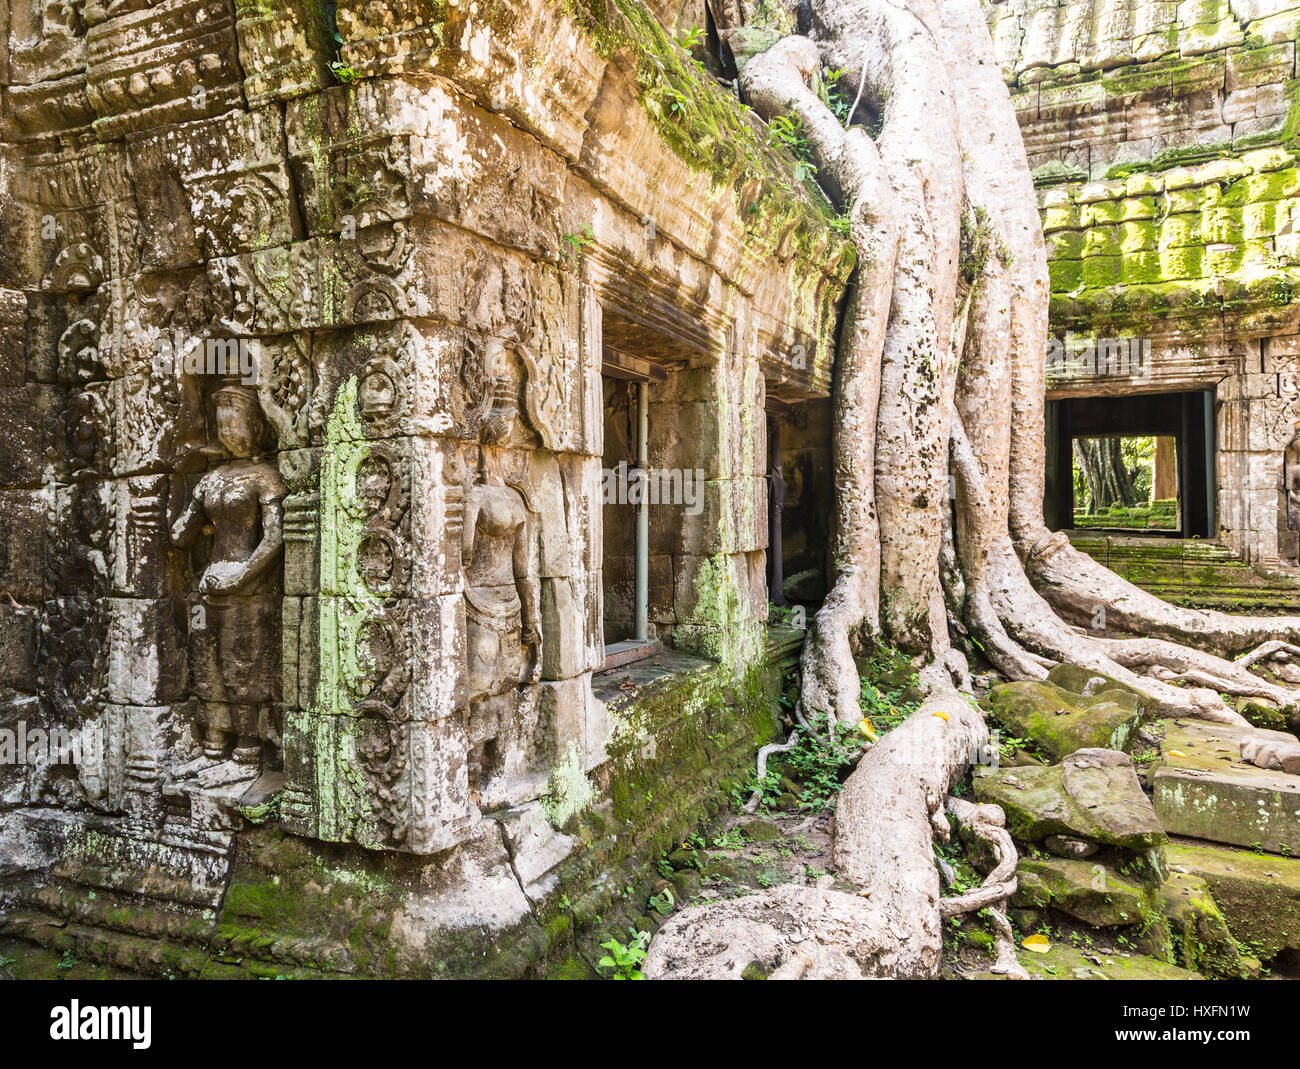 Bas relief and trees merging with the old stone of the famous Khmer Ta Prohm temple in Angkor, Siem Reap in Cambodia - Stock Image